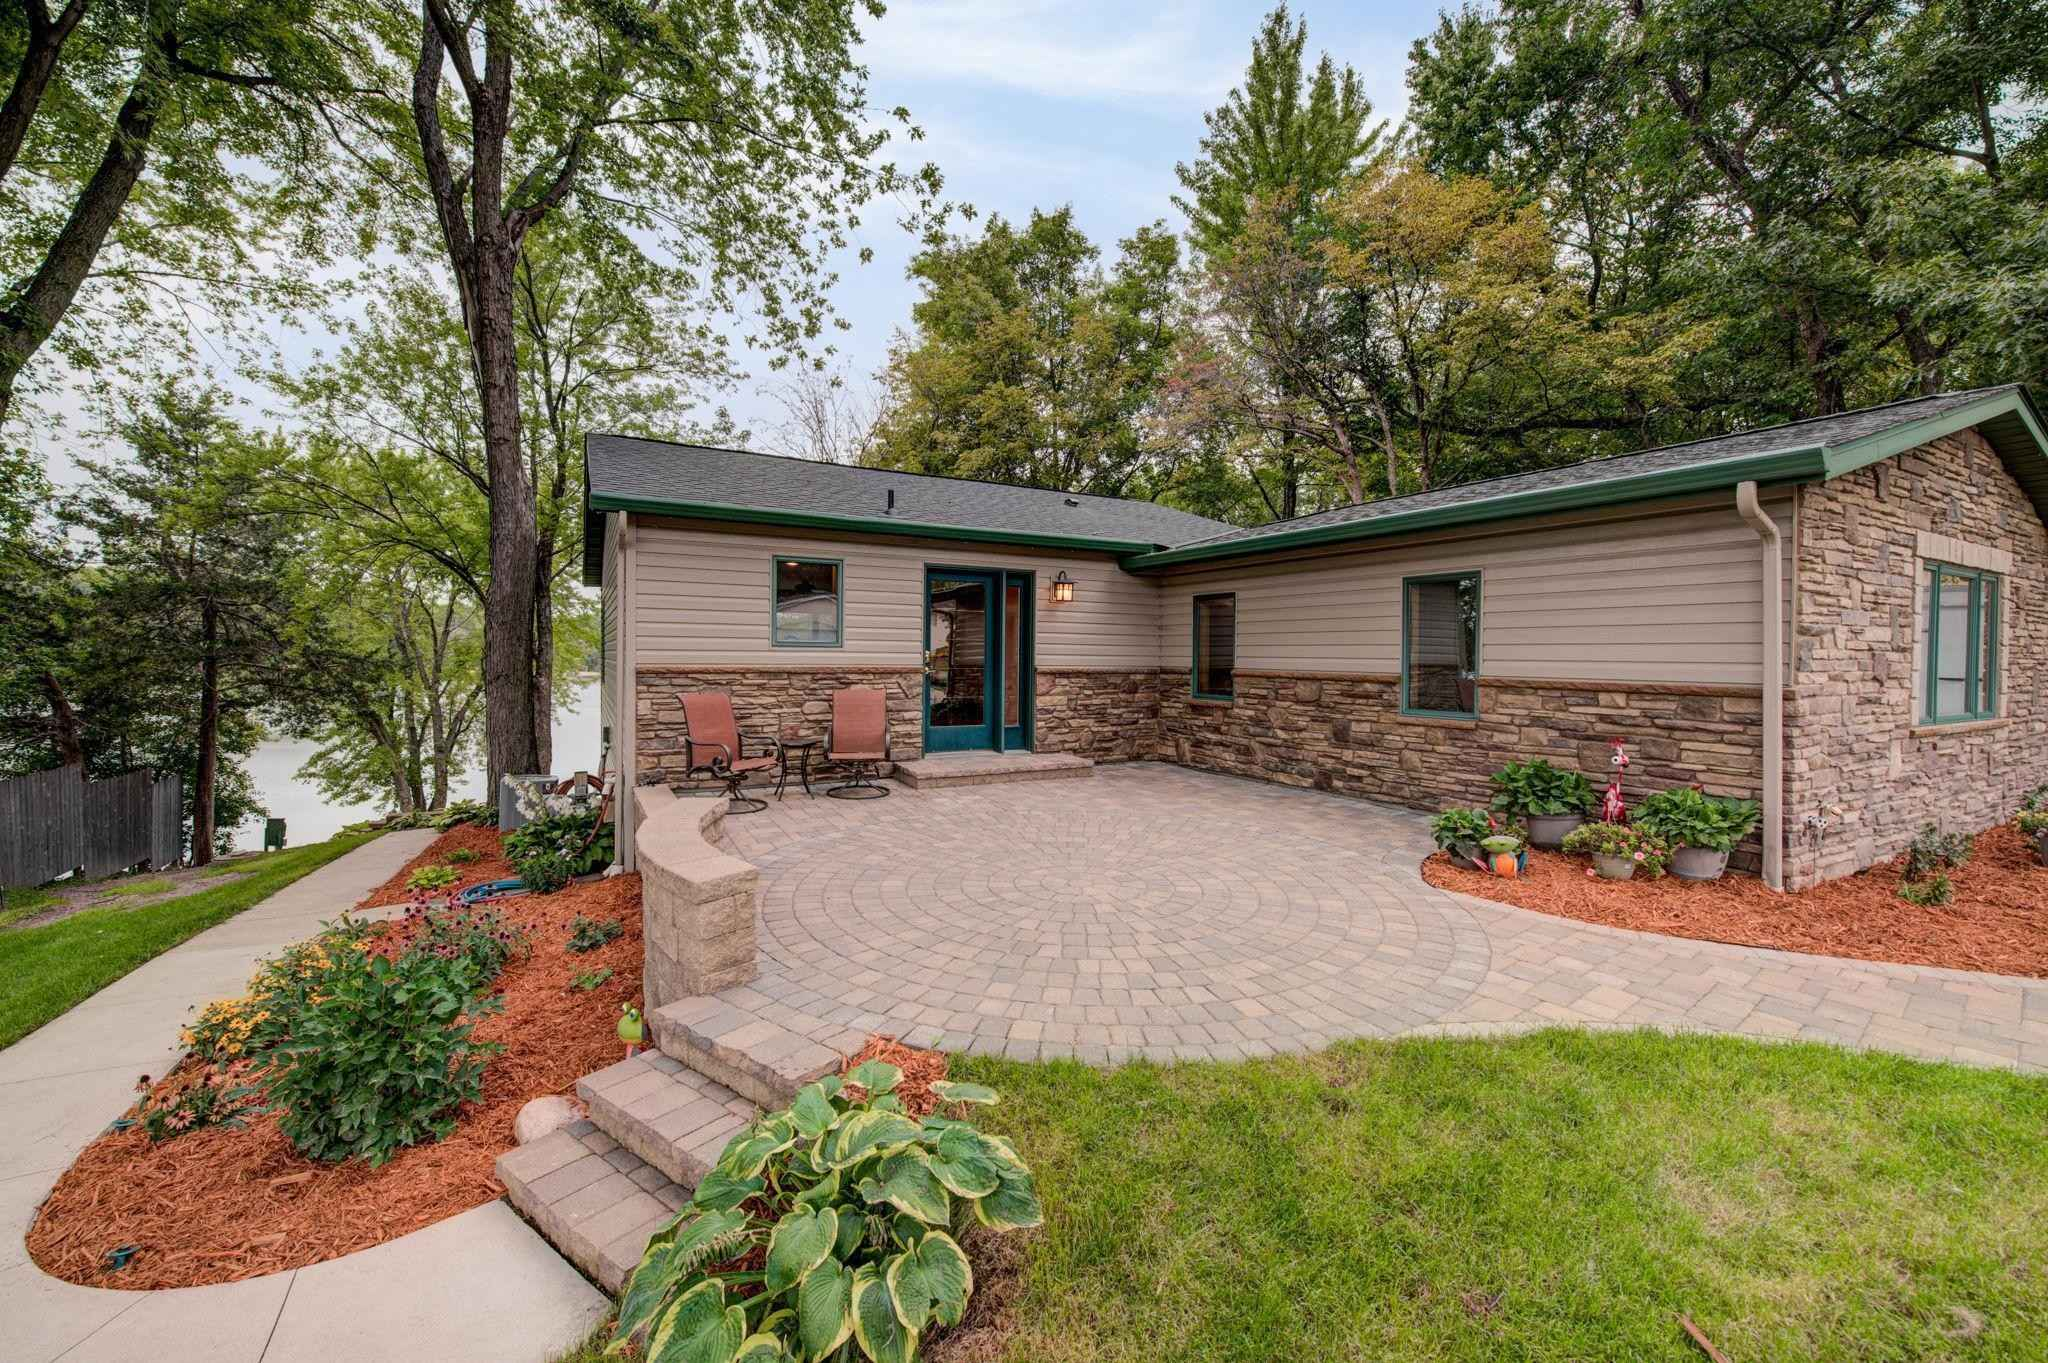 View 13 photos of this 3 bed, 1 bath, and 2,065 sqft. single_family home located at 1948 Donnelly Dr NW, Buffalo, Minnesota 55313 is Pending for $629,900.